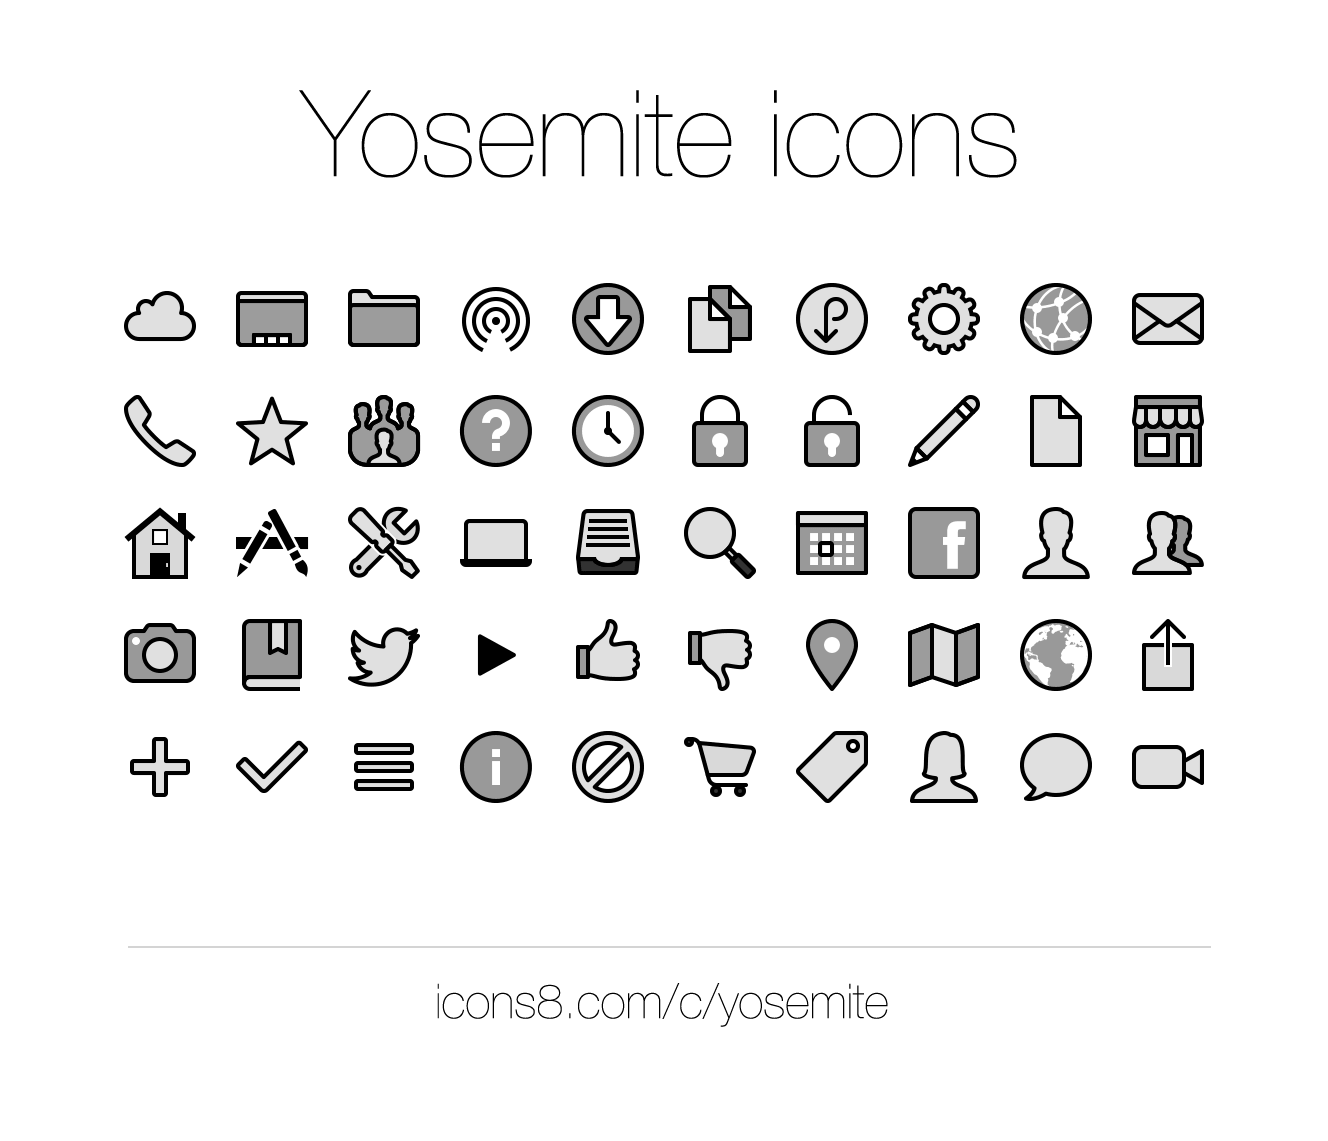 Icons8 MacOS X Yosemite sidebar icons preview